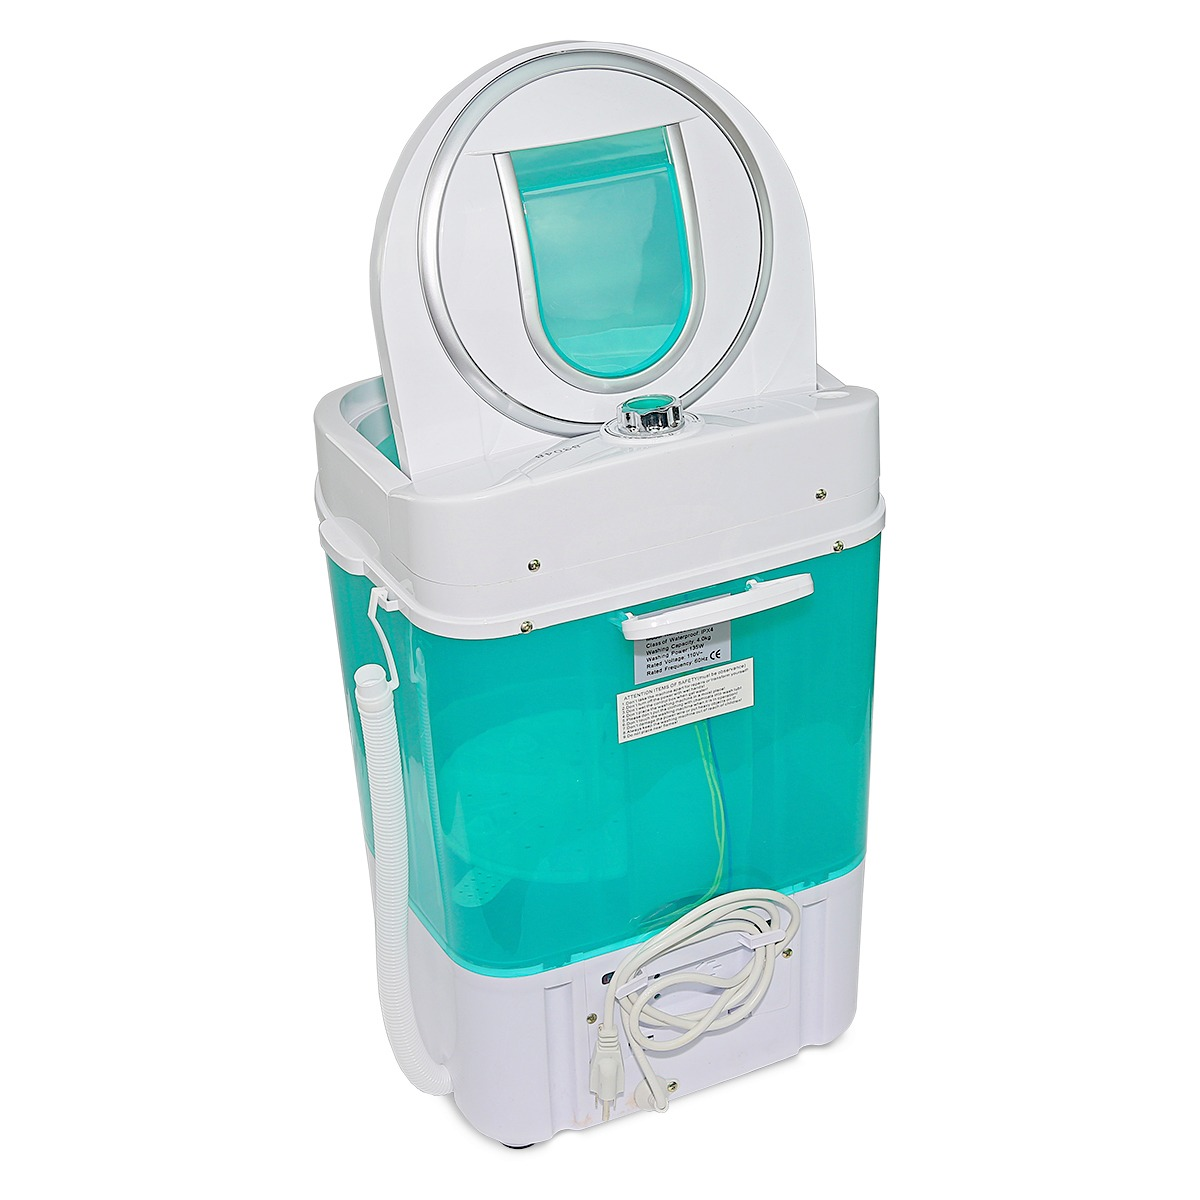 Mini Washing Machines Electric Mini Portable Compact Washer Washing Machine 12gal